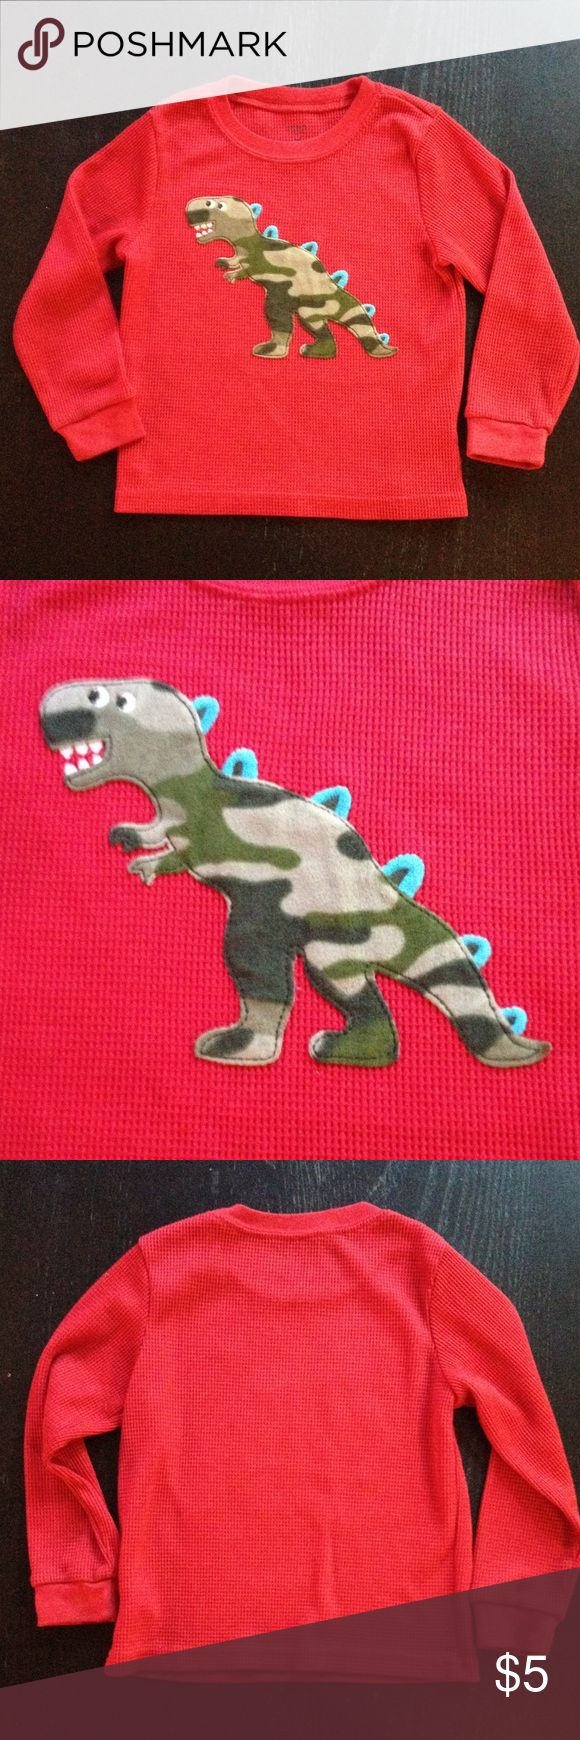 Carter's long sleeve thermo Dino shirt Carter's long sleeve thermo shirt with Dino.  100% polyester. Carter's Shirts & Tops Tees - Long Sleeve